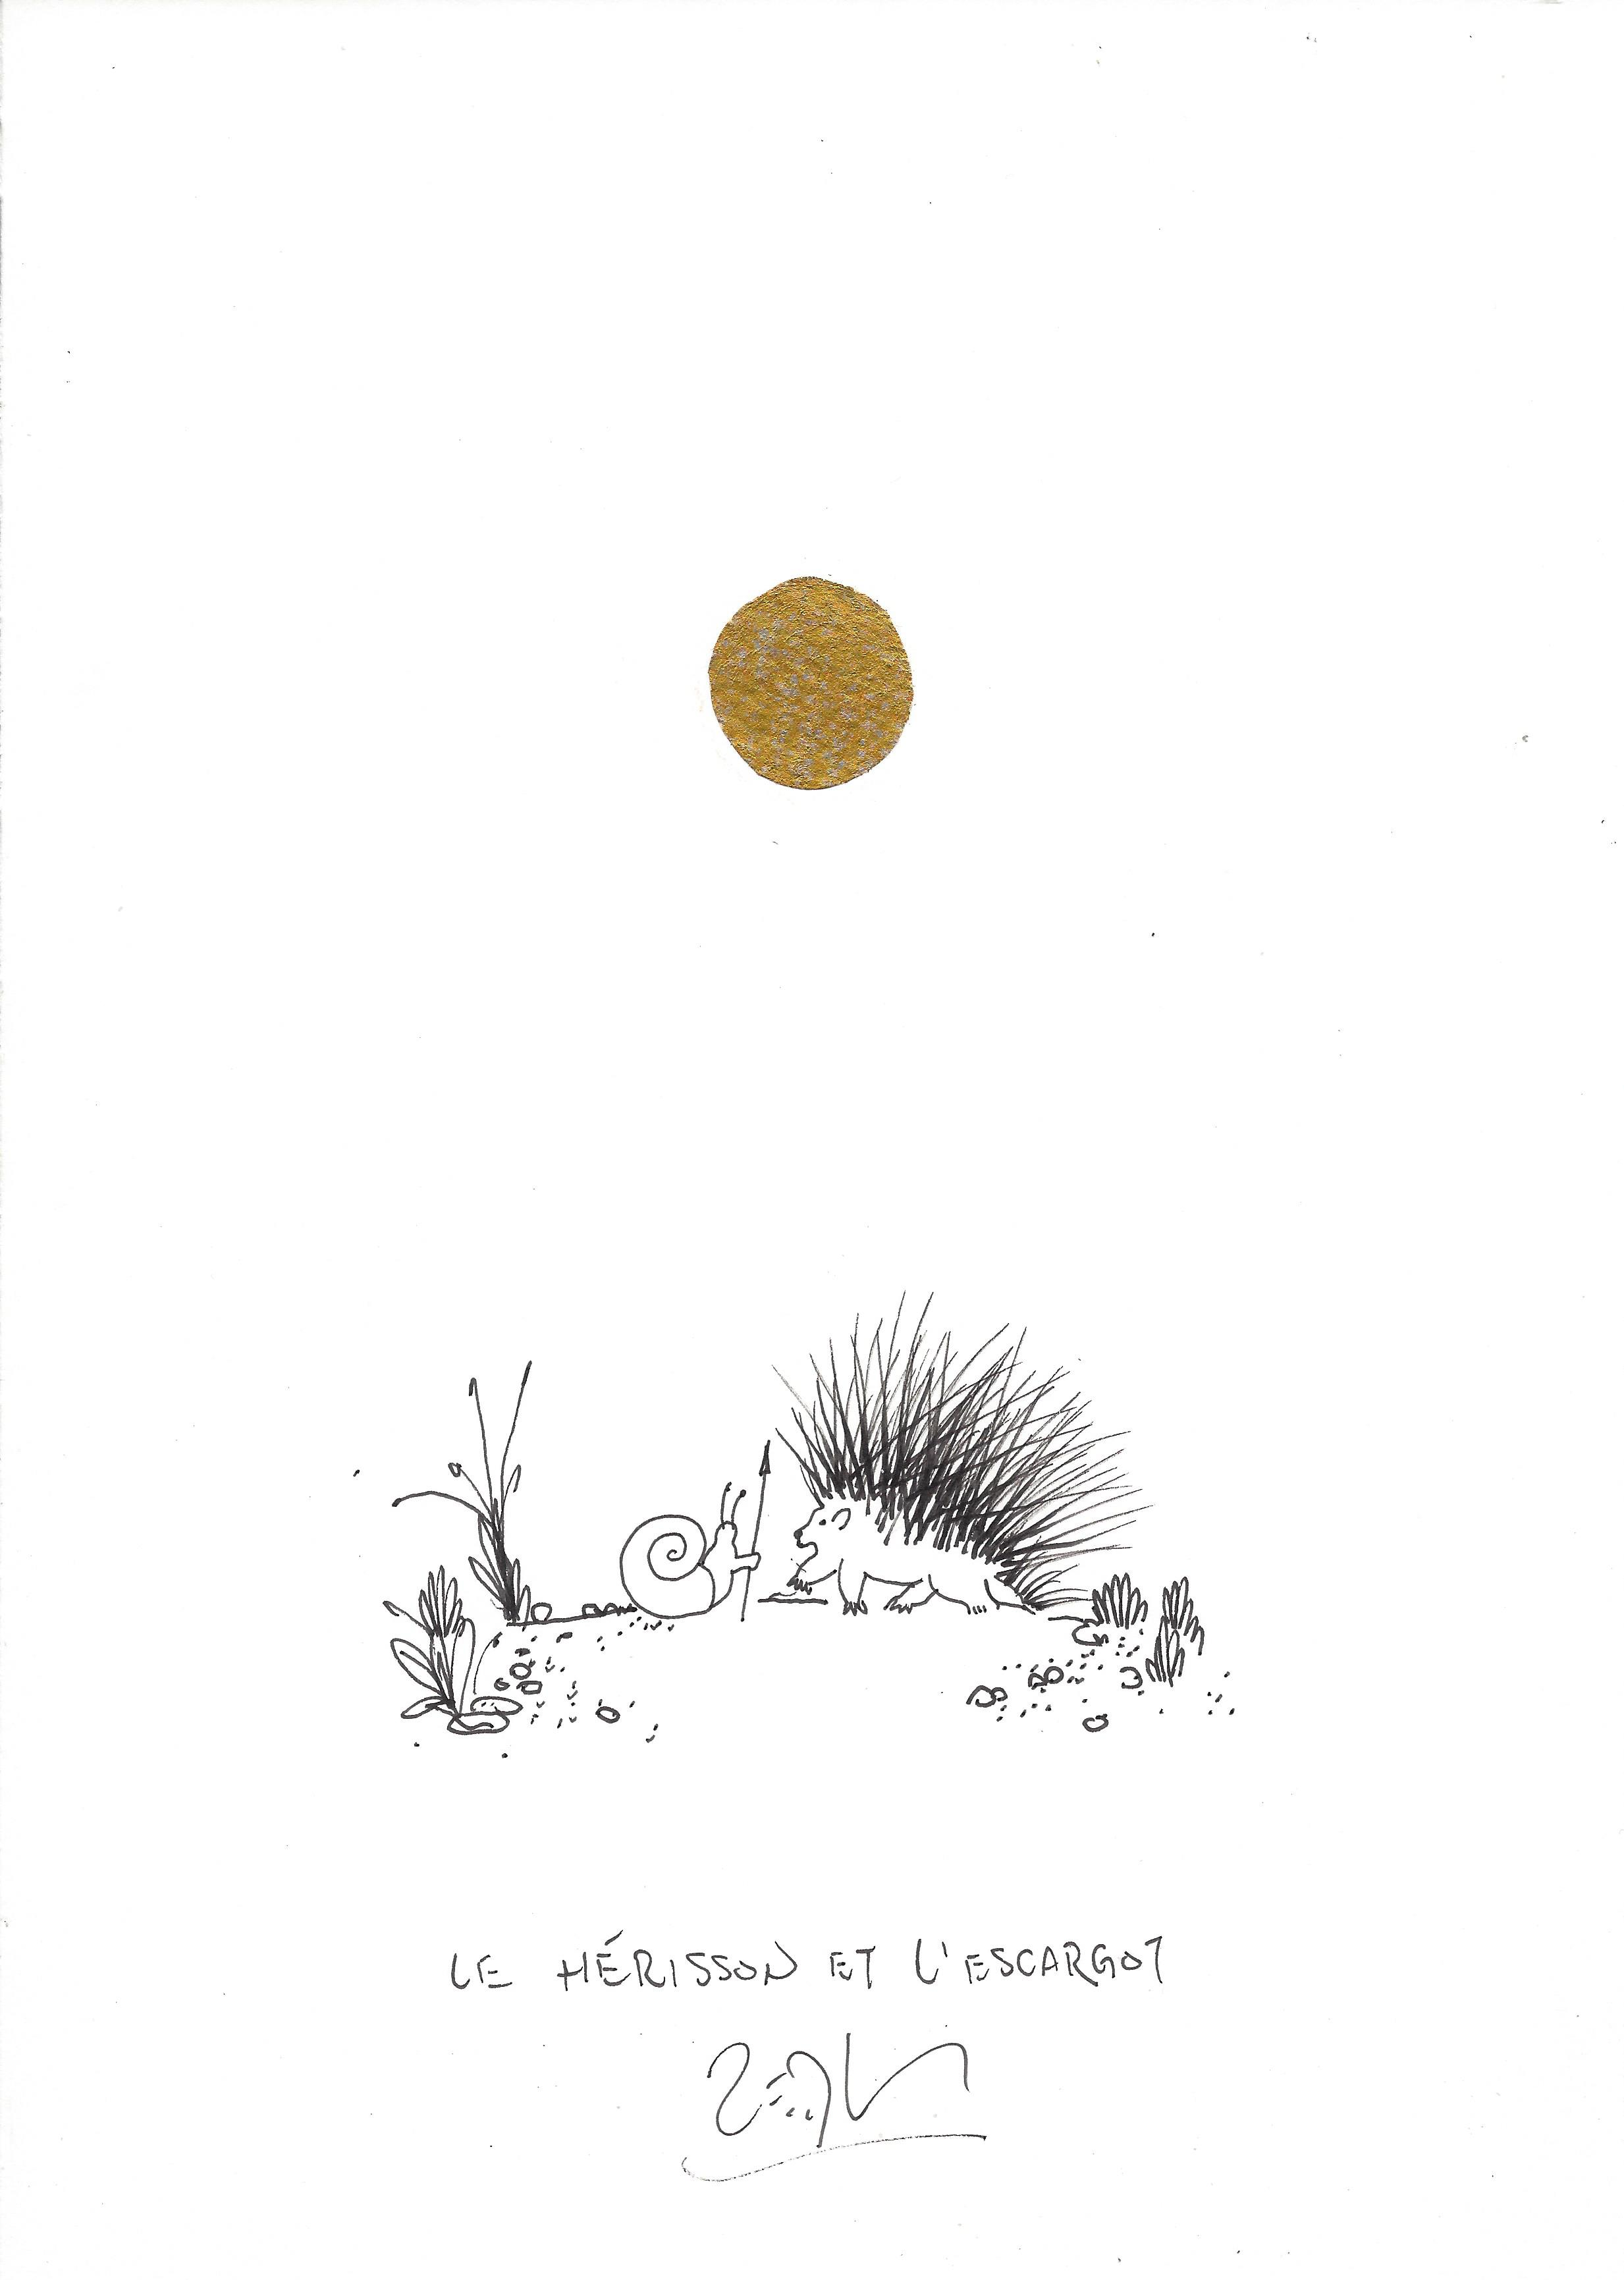 « The hedgehog and the snail – Le hérisson et l'escargot »